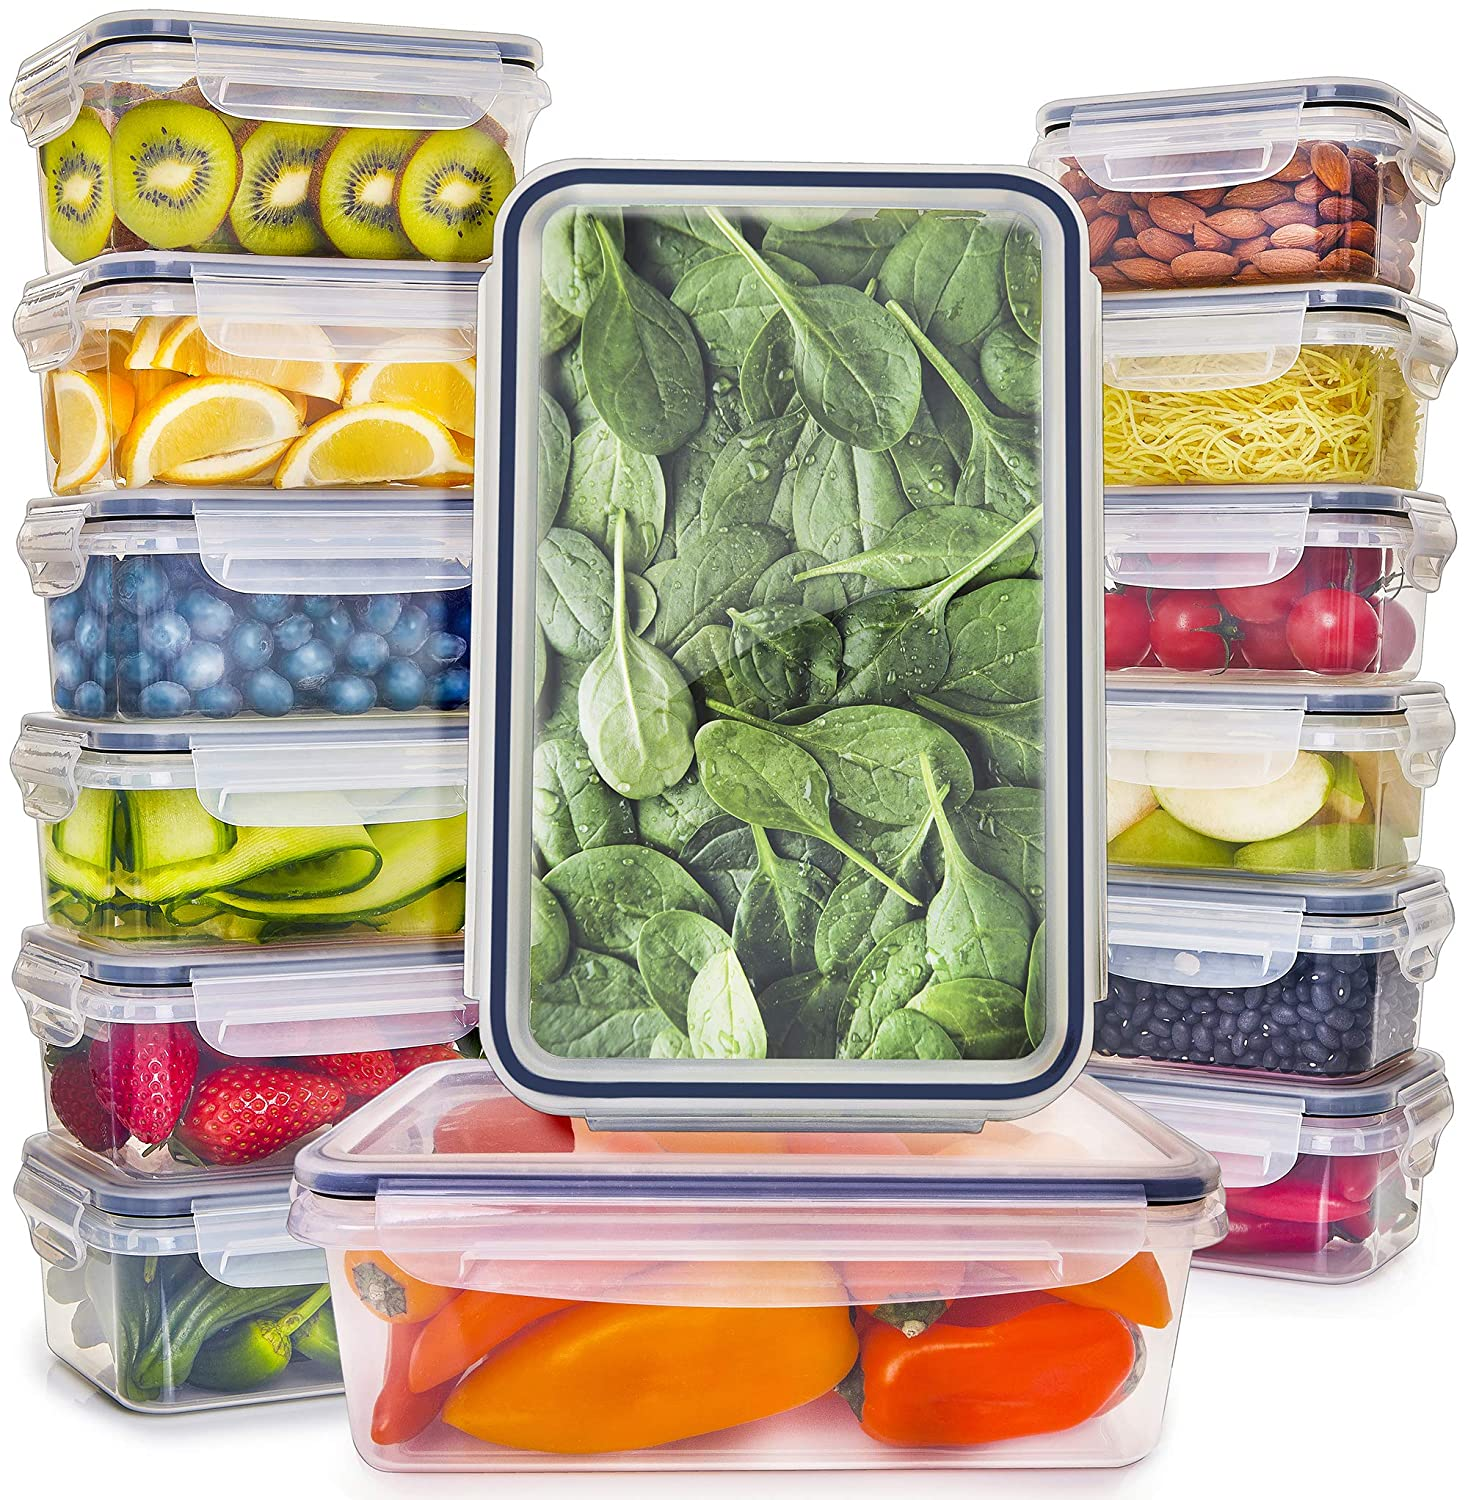 Food Storage Containers with Lids - Plastic Food Containers with Lids - Plastic Containers with Lids BPA Free - Leftover Food Containers - Airtight Leak Proof Easy Snap Lock Food Container [14-Pack]